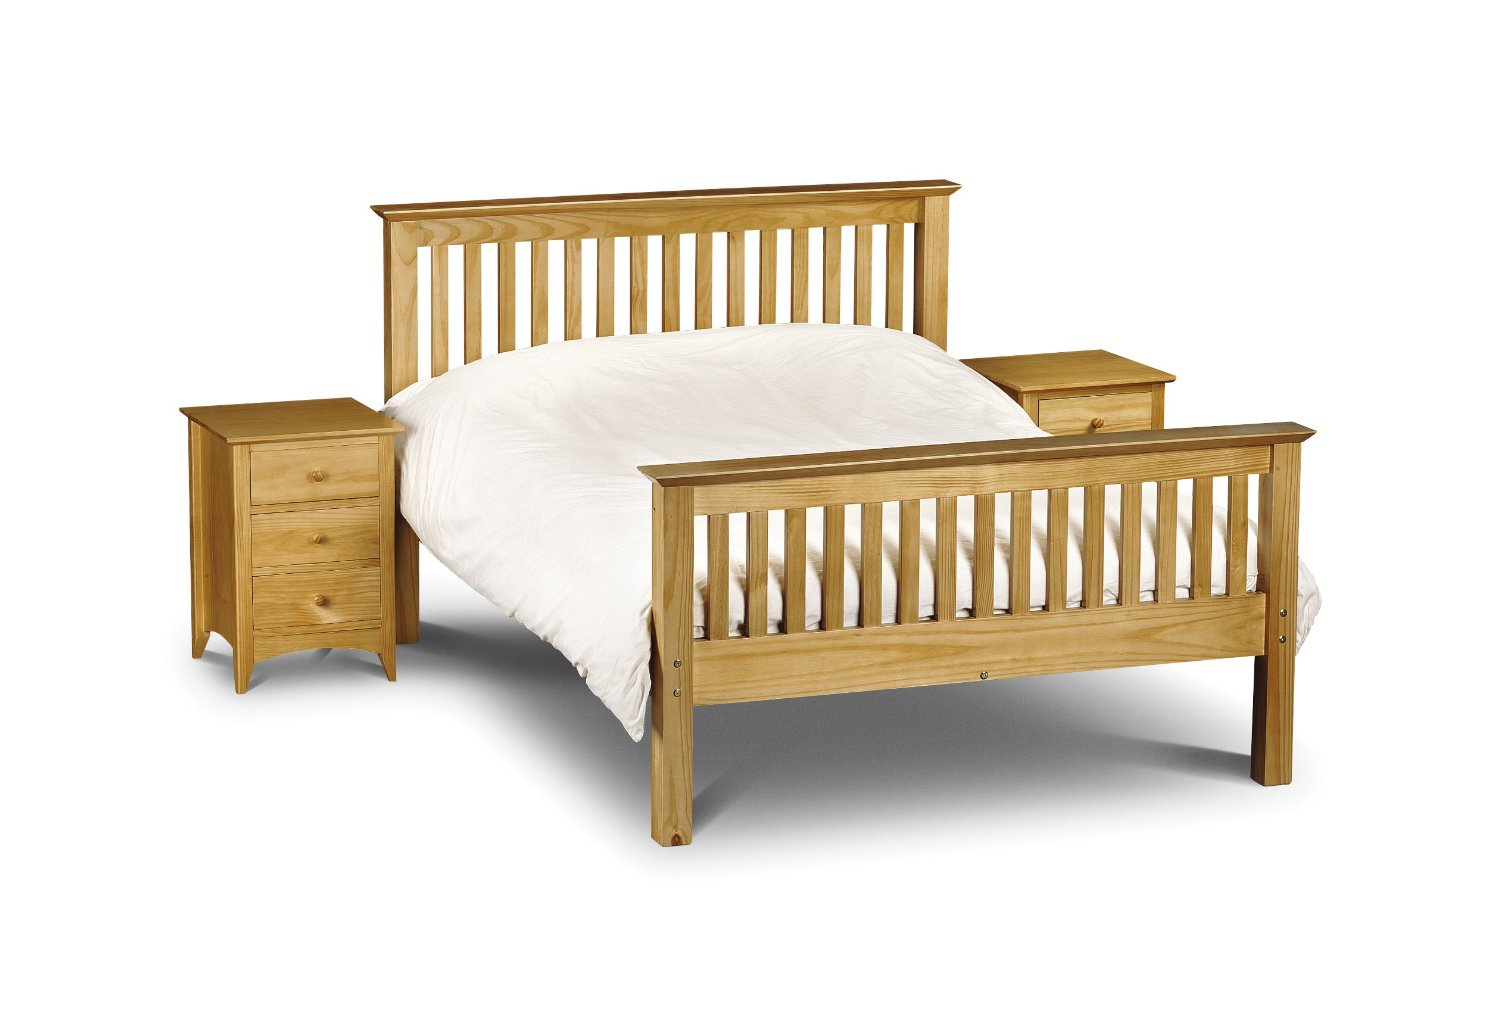 https://www.firstfurniture.co.uk/pub/media/catalog/product/8/1/81Vxg-A1e4L._SL1500_.jpg